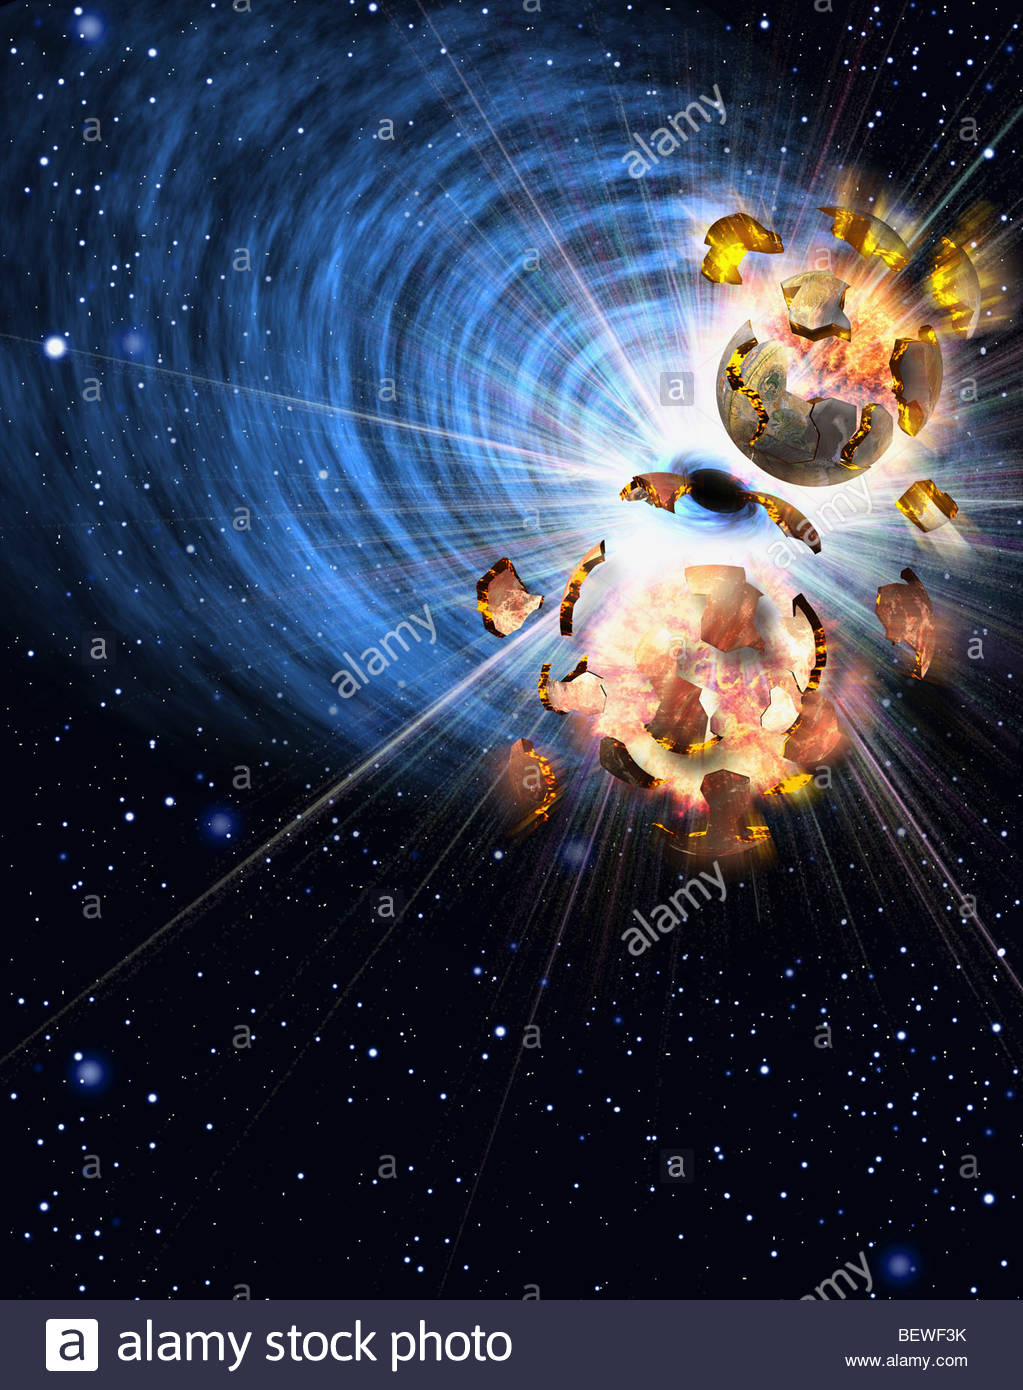 Asteroids Colliding With Planet Stock Photos Asteroids